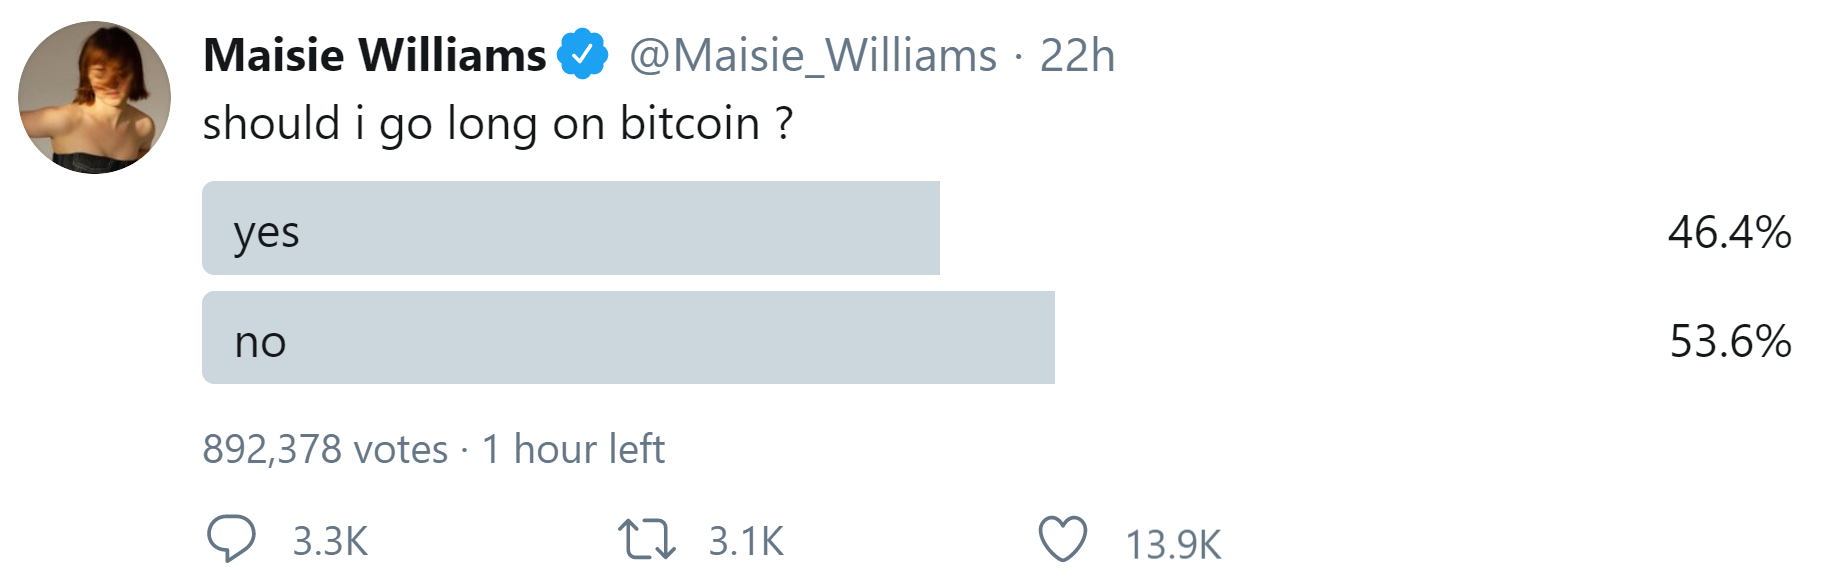 Video Game of Thrones Celebrity Maisie Williams Would Like To Know if She Ought To Get Bitcoin 3